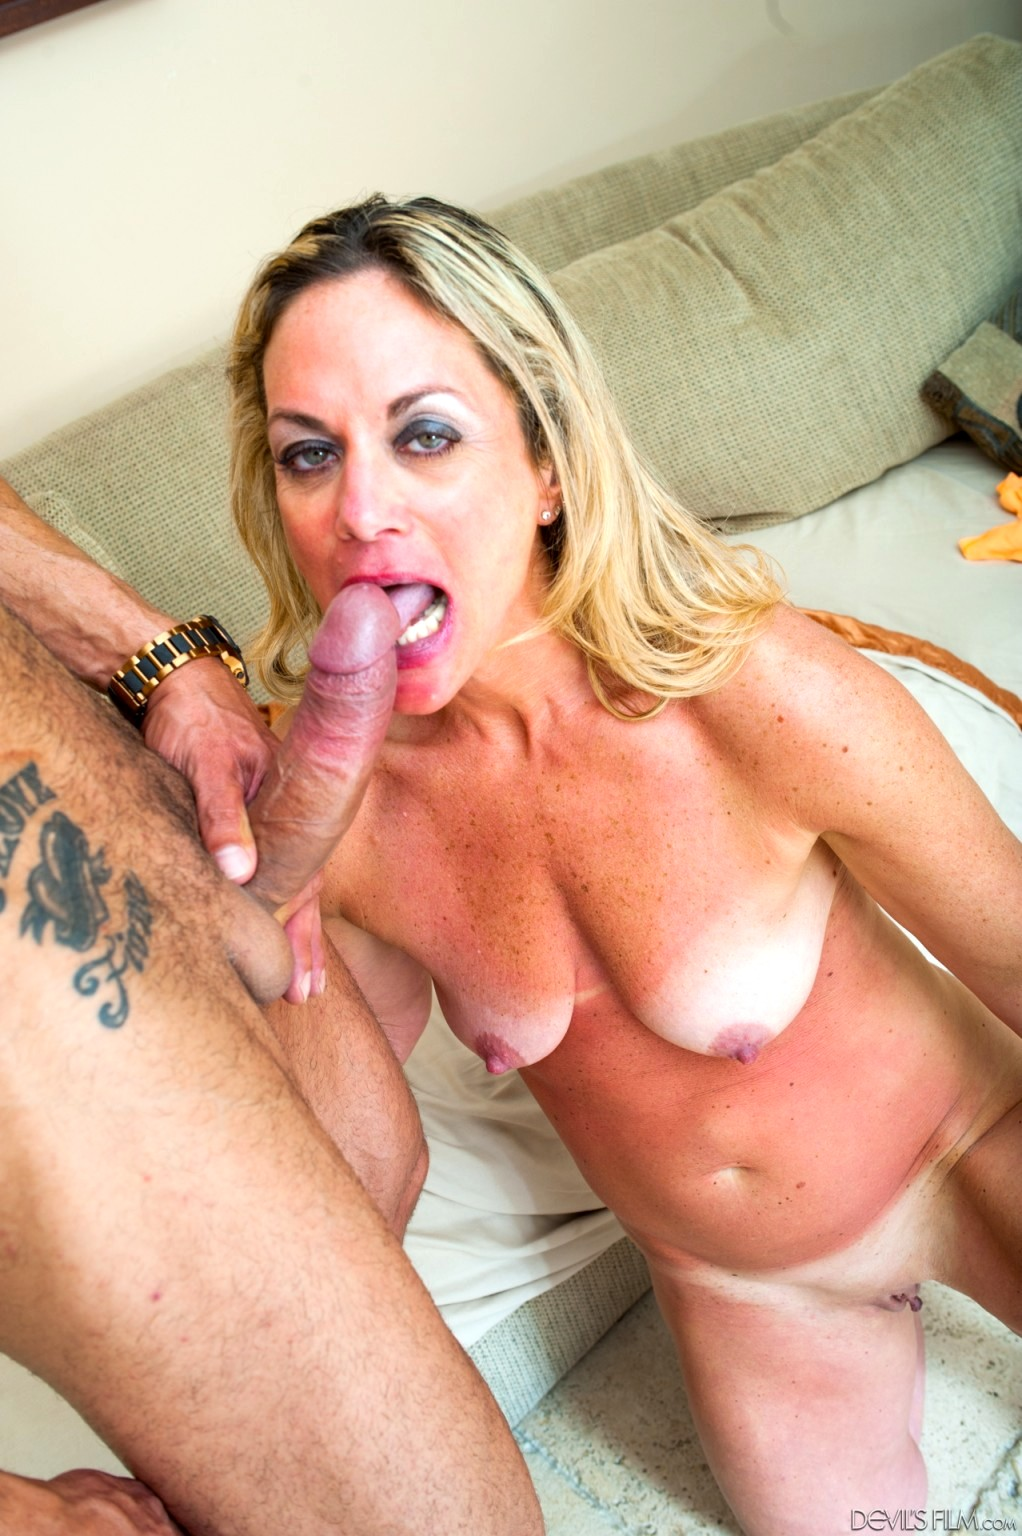 remarkable, very valuable blonde milf deepthroat something is. Now